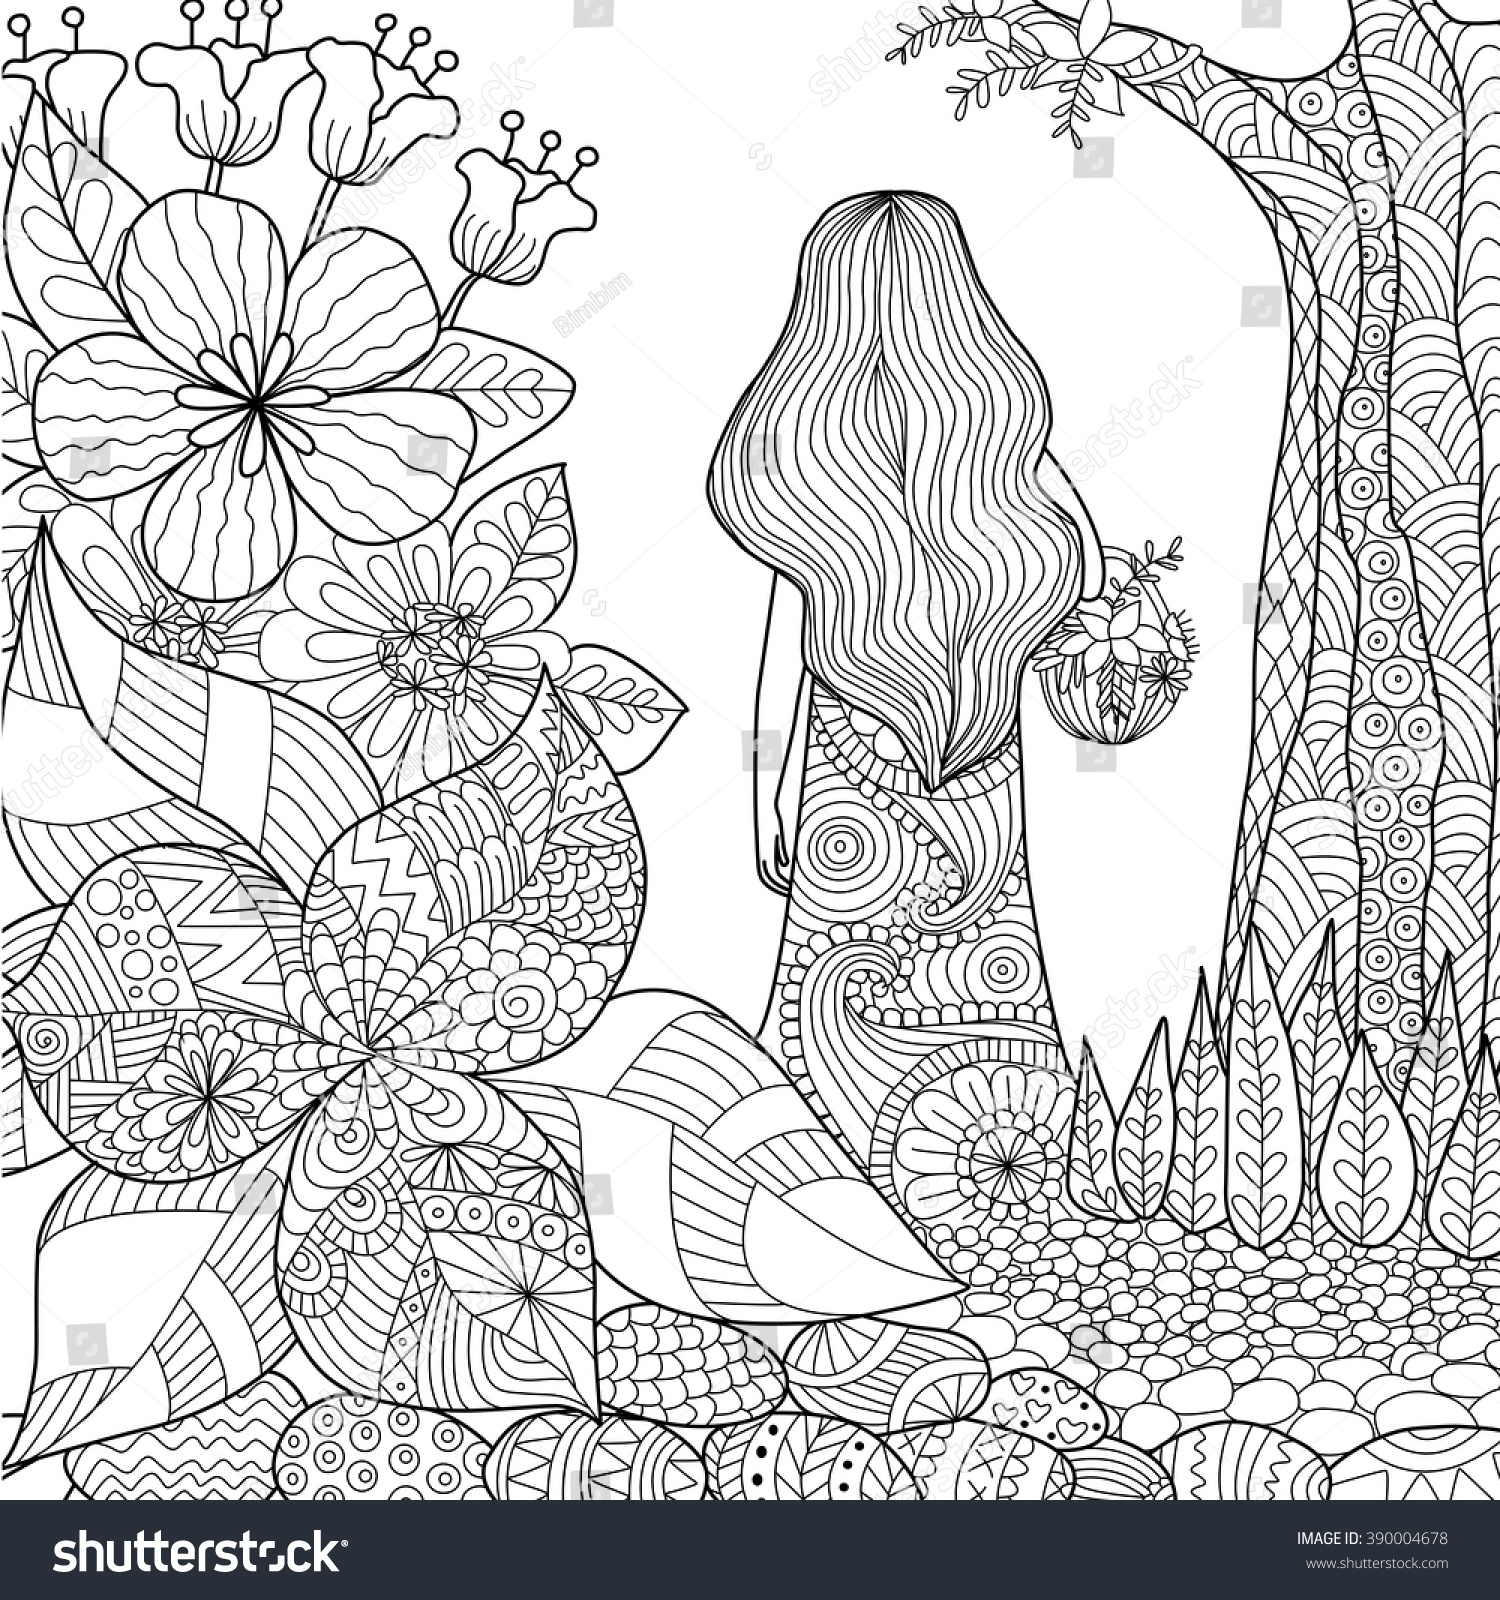 Line Art Book : Girl garden whimsical line art coloring stock vector